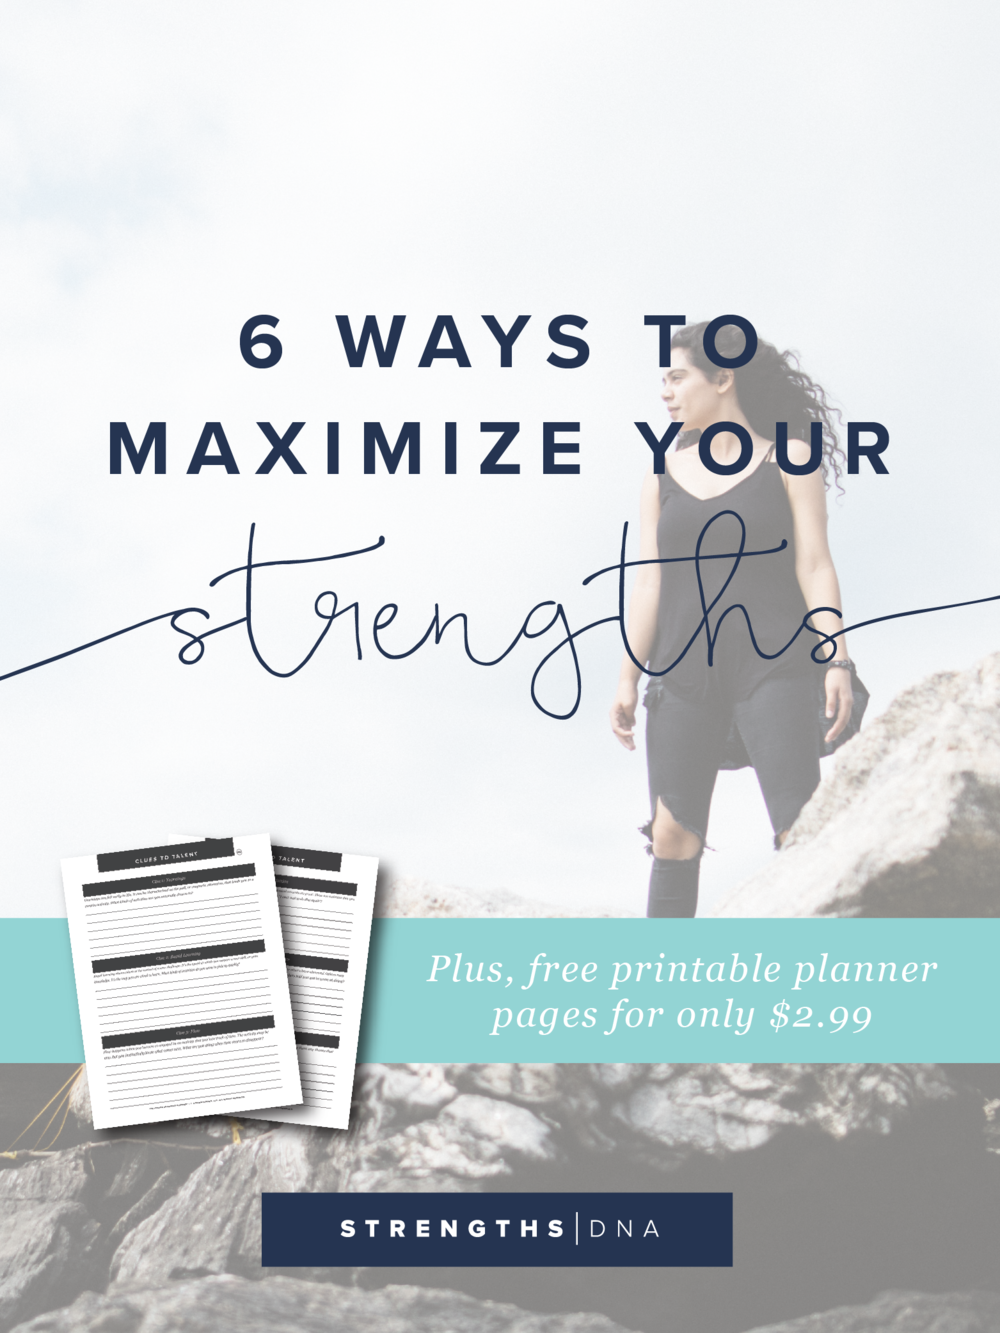 6 Ways to Maximize Your Strengths